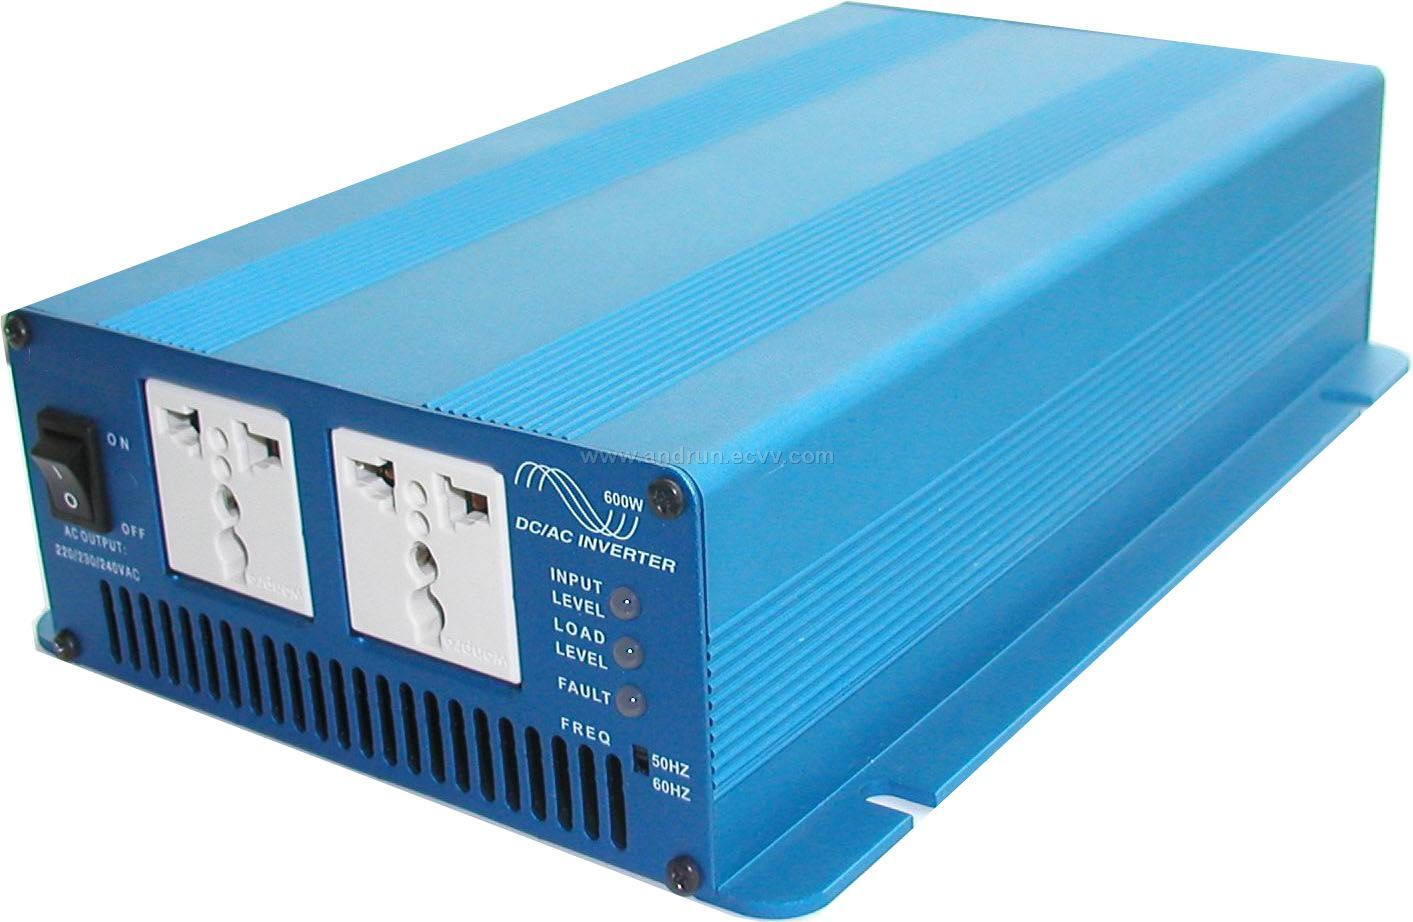 Your inverter backup system is only as good as the state of charge of your battery bank